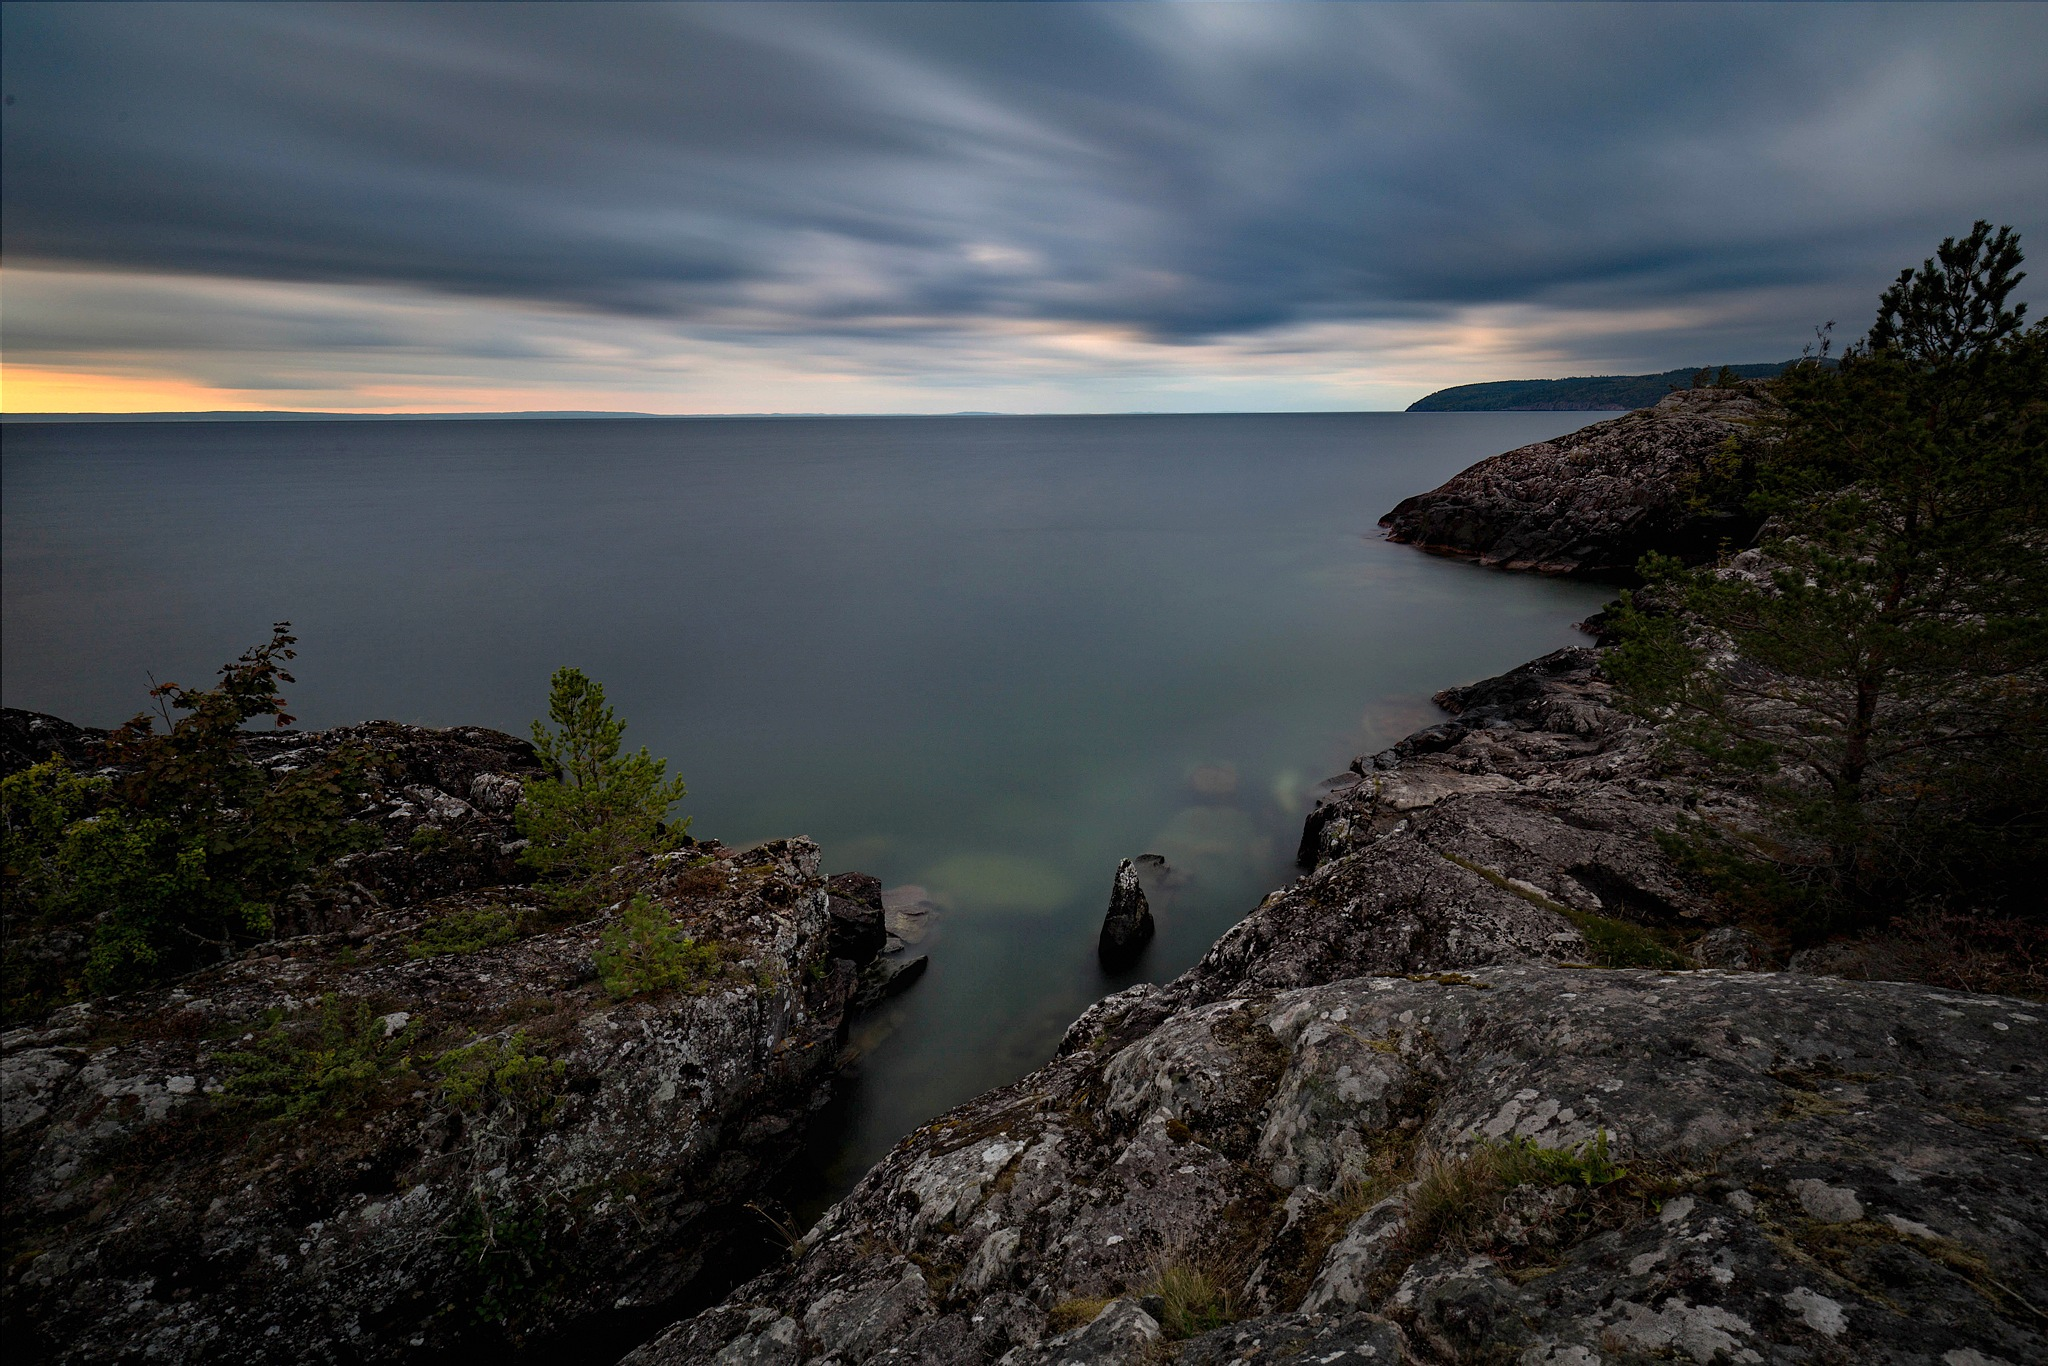 Rocks, water and space resolved in the cascades of tones  by Lena Schöld